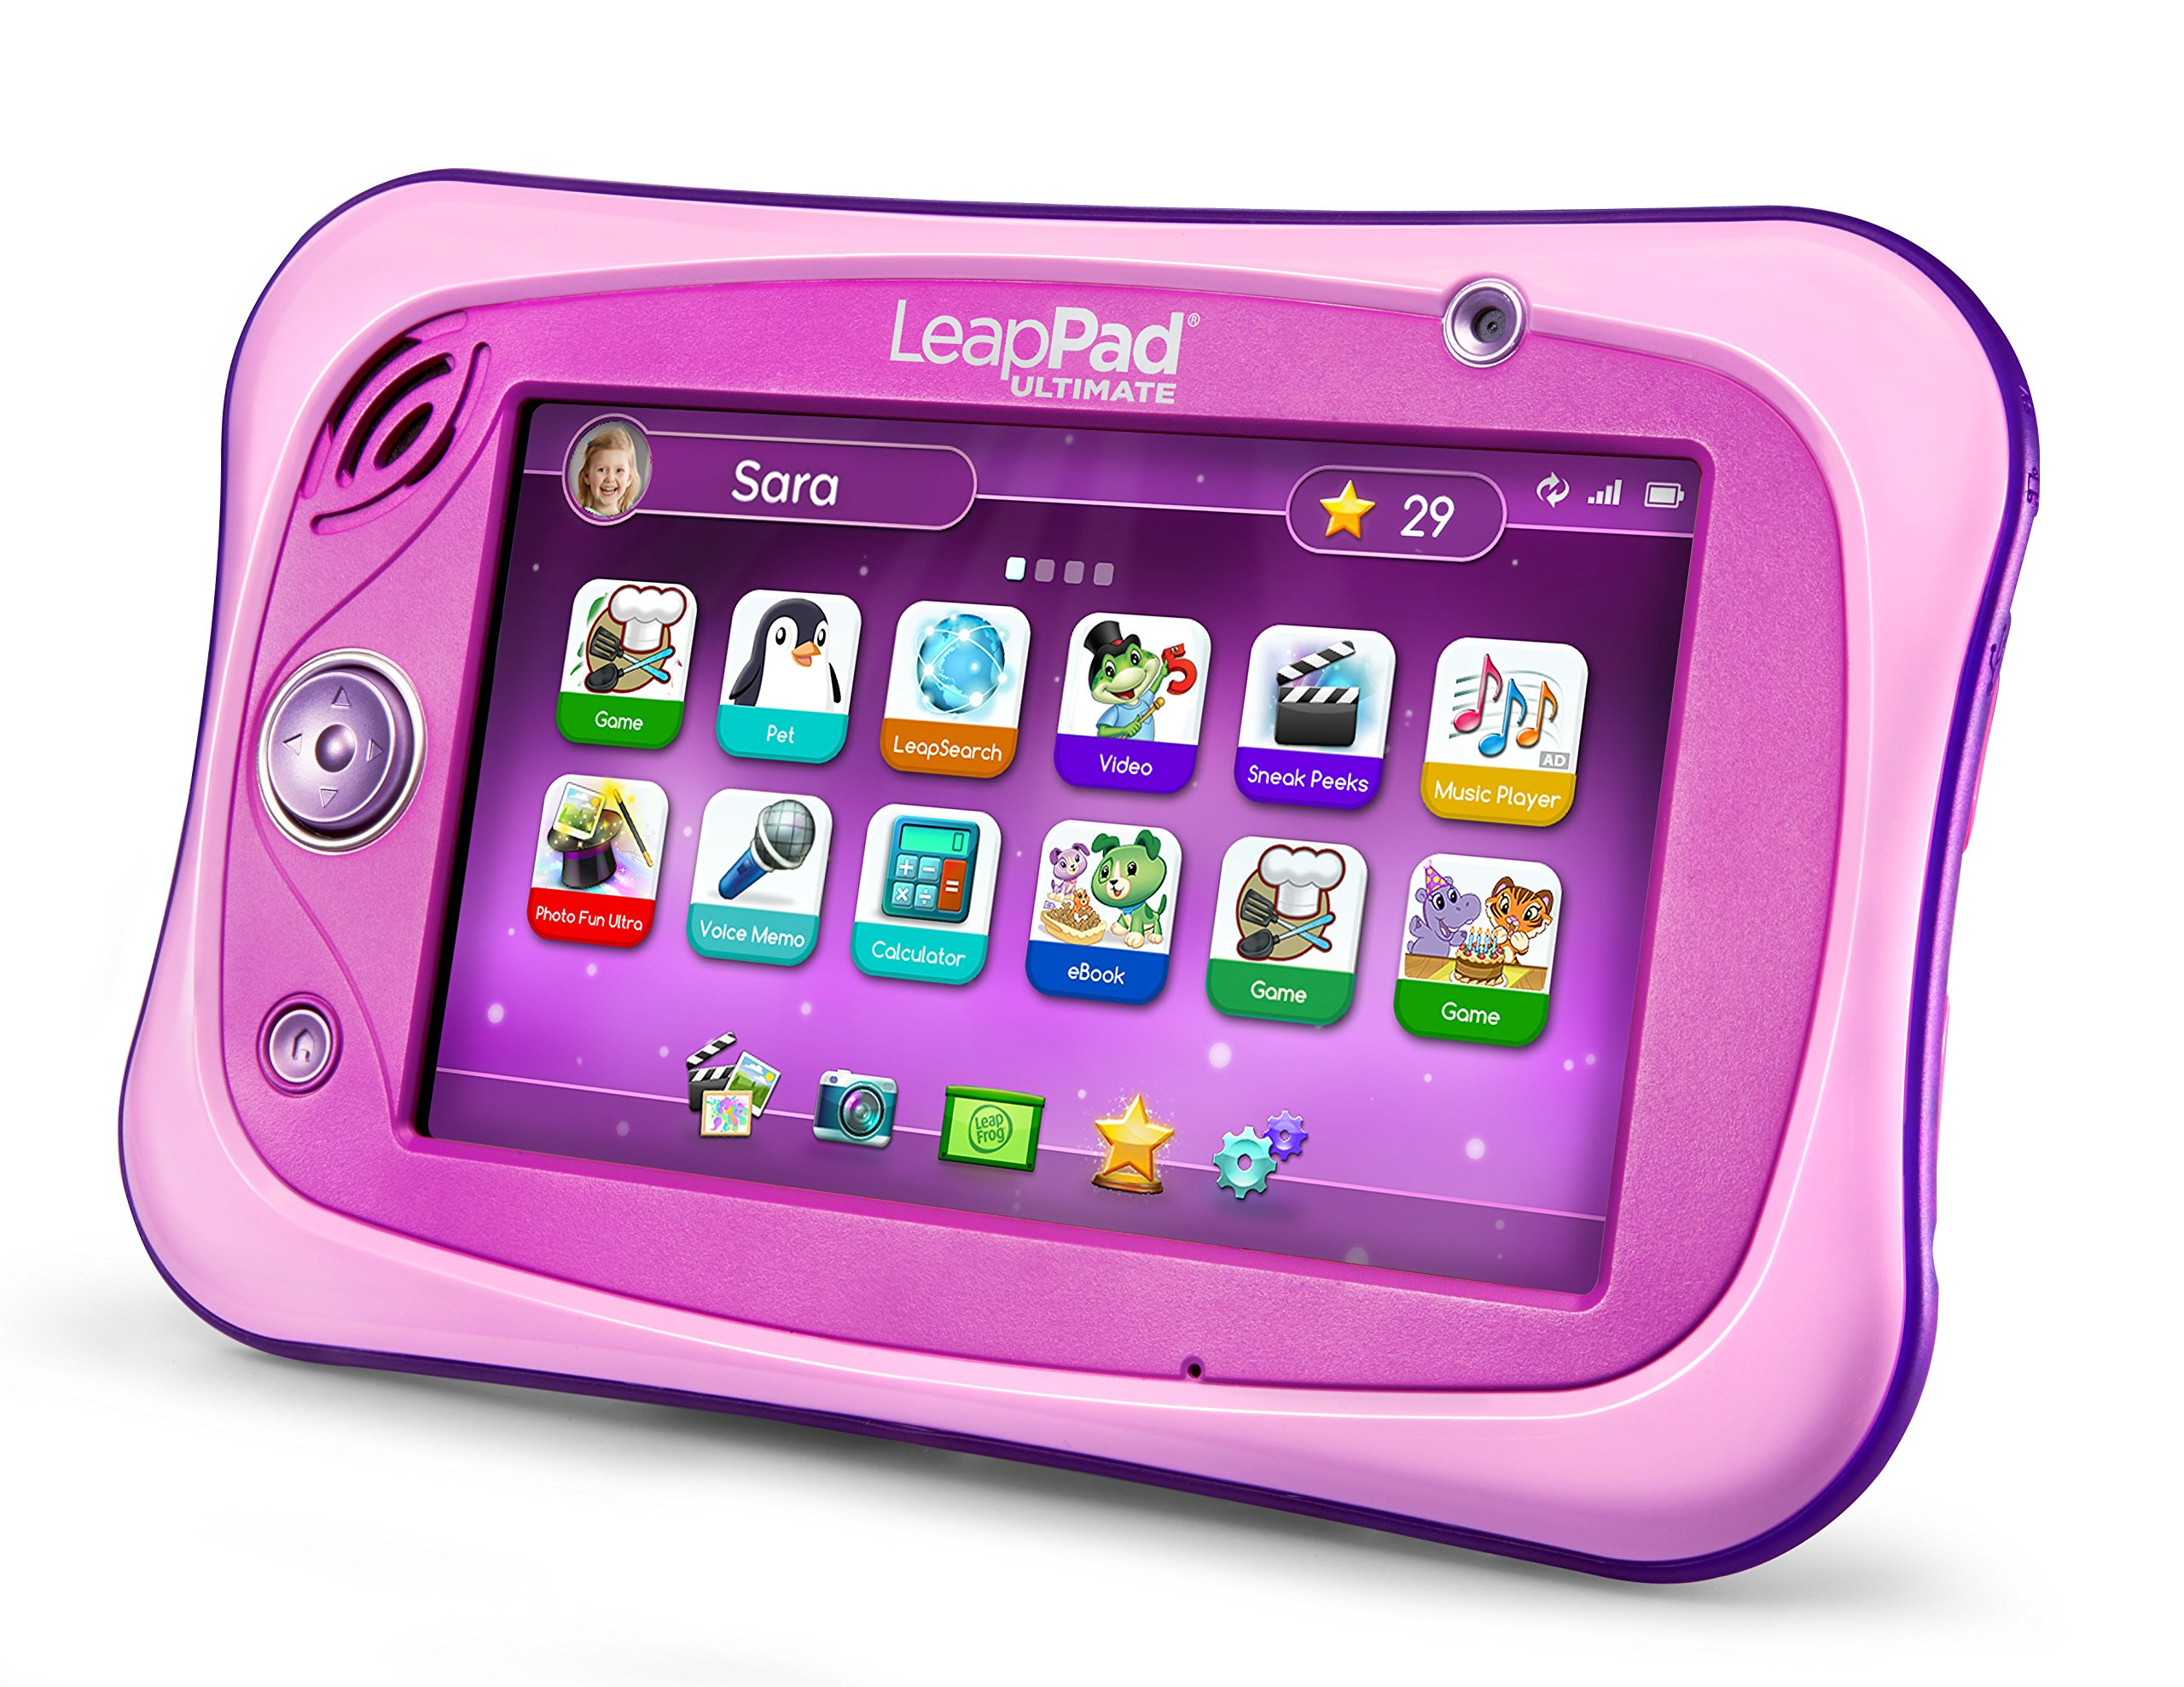 LeapFrog LeapPad Ultimate Ready for School Tablet, Pink by LeapFrog (Image #2)